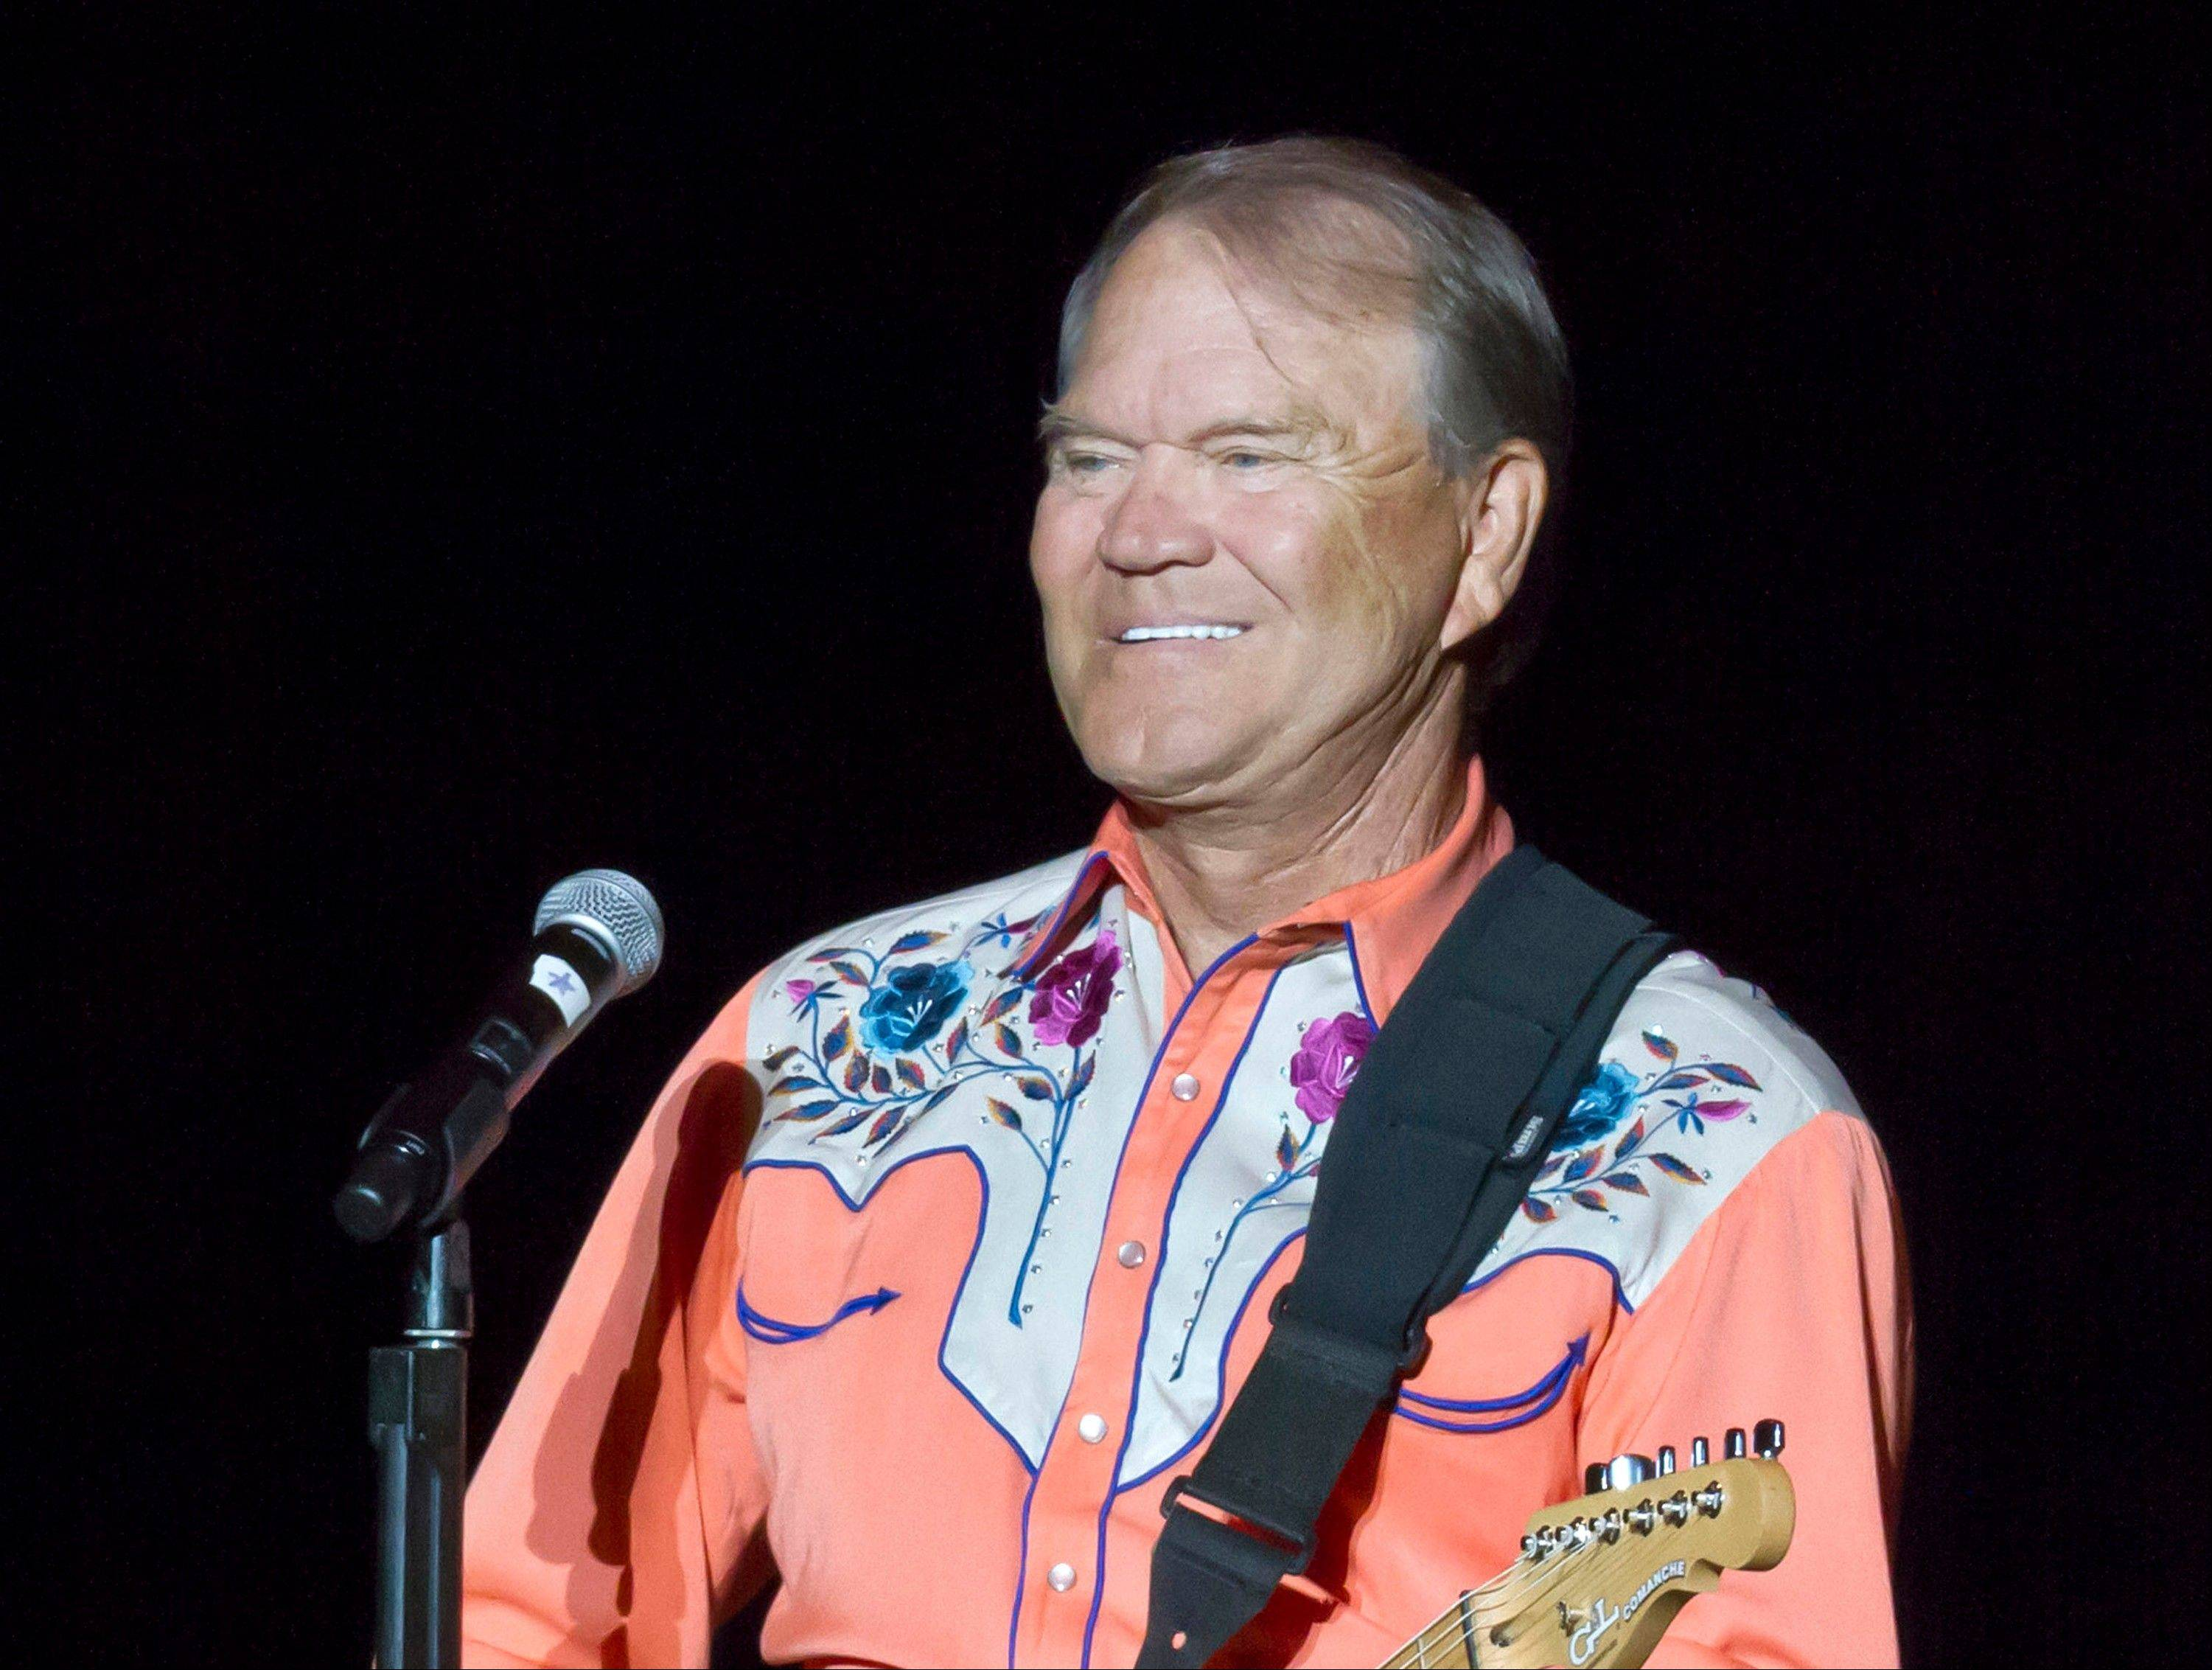 Singer Glen Campbell will be advocating for Alzheimer�s disease research during a visit to Capitol Hill Monday.